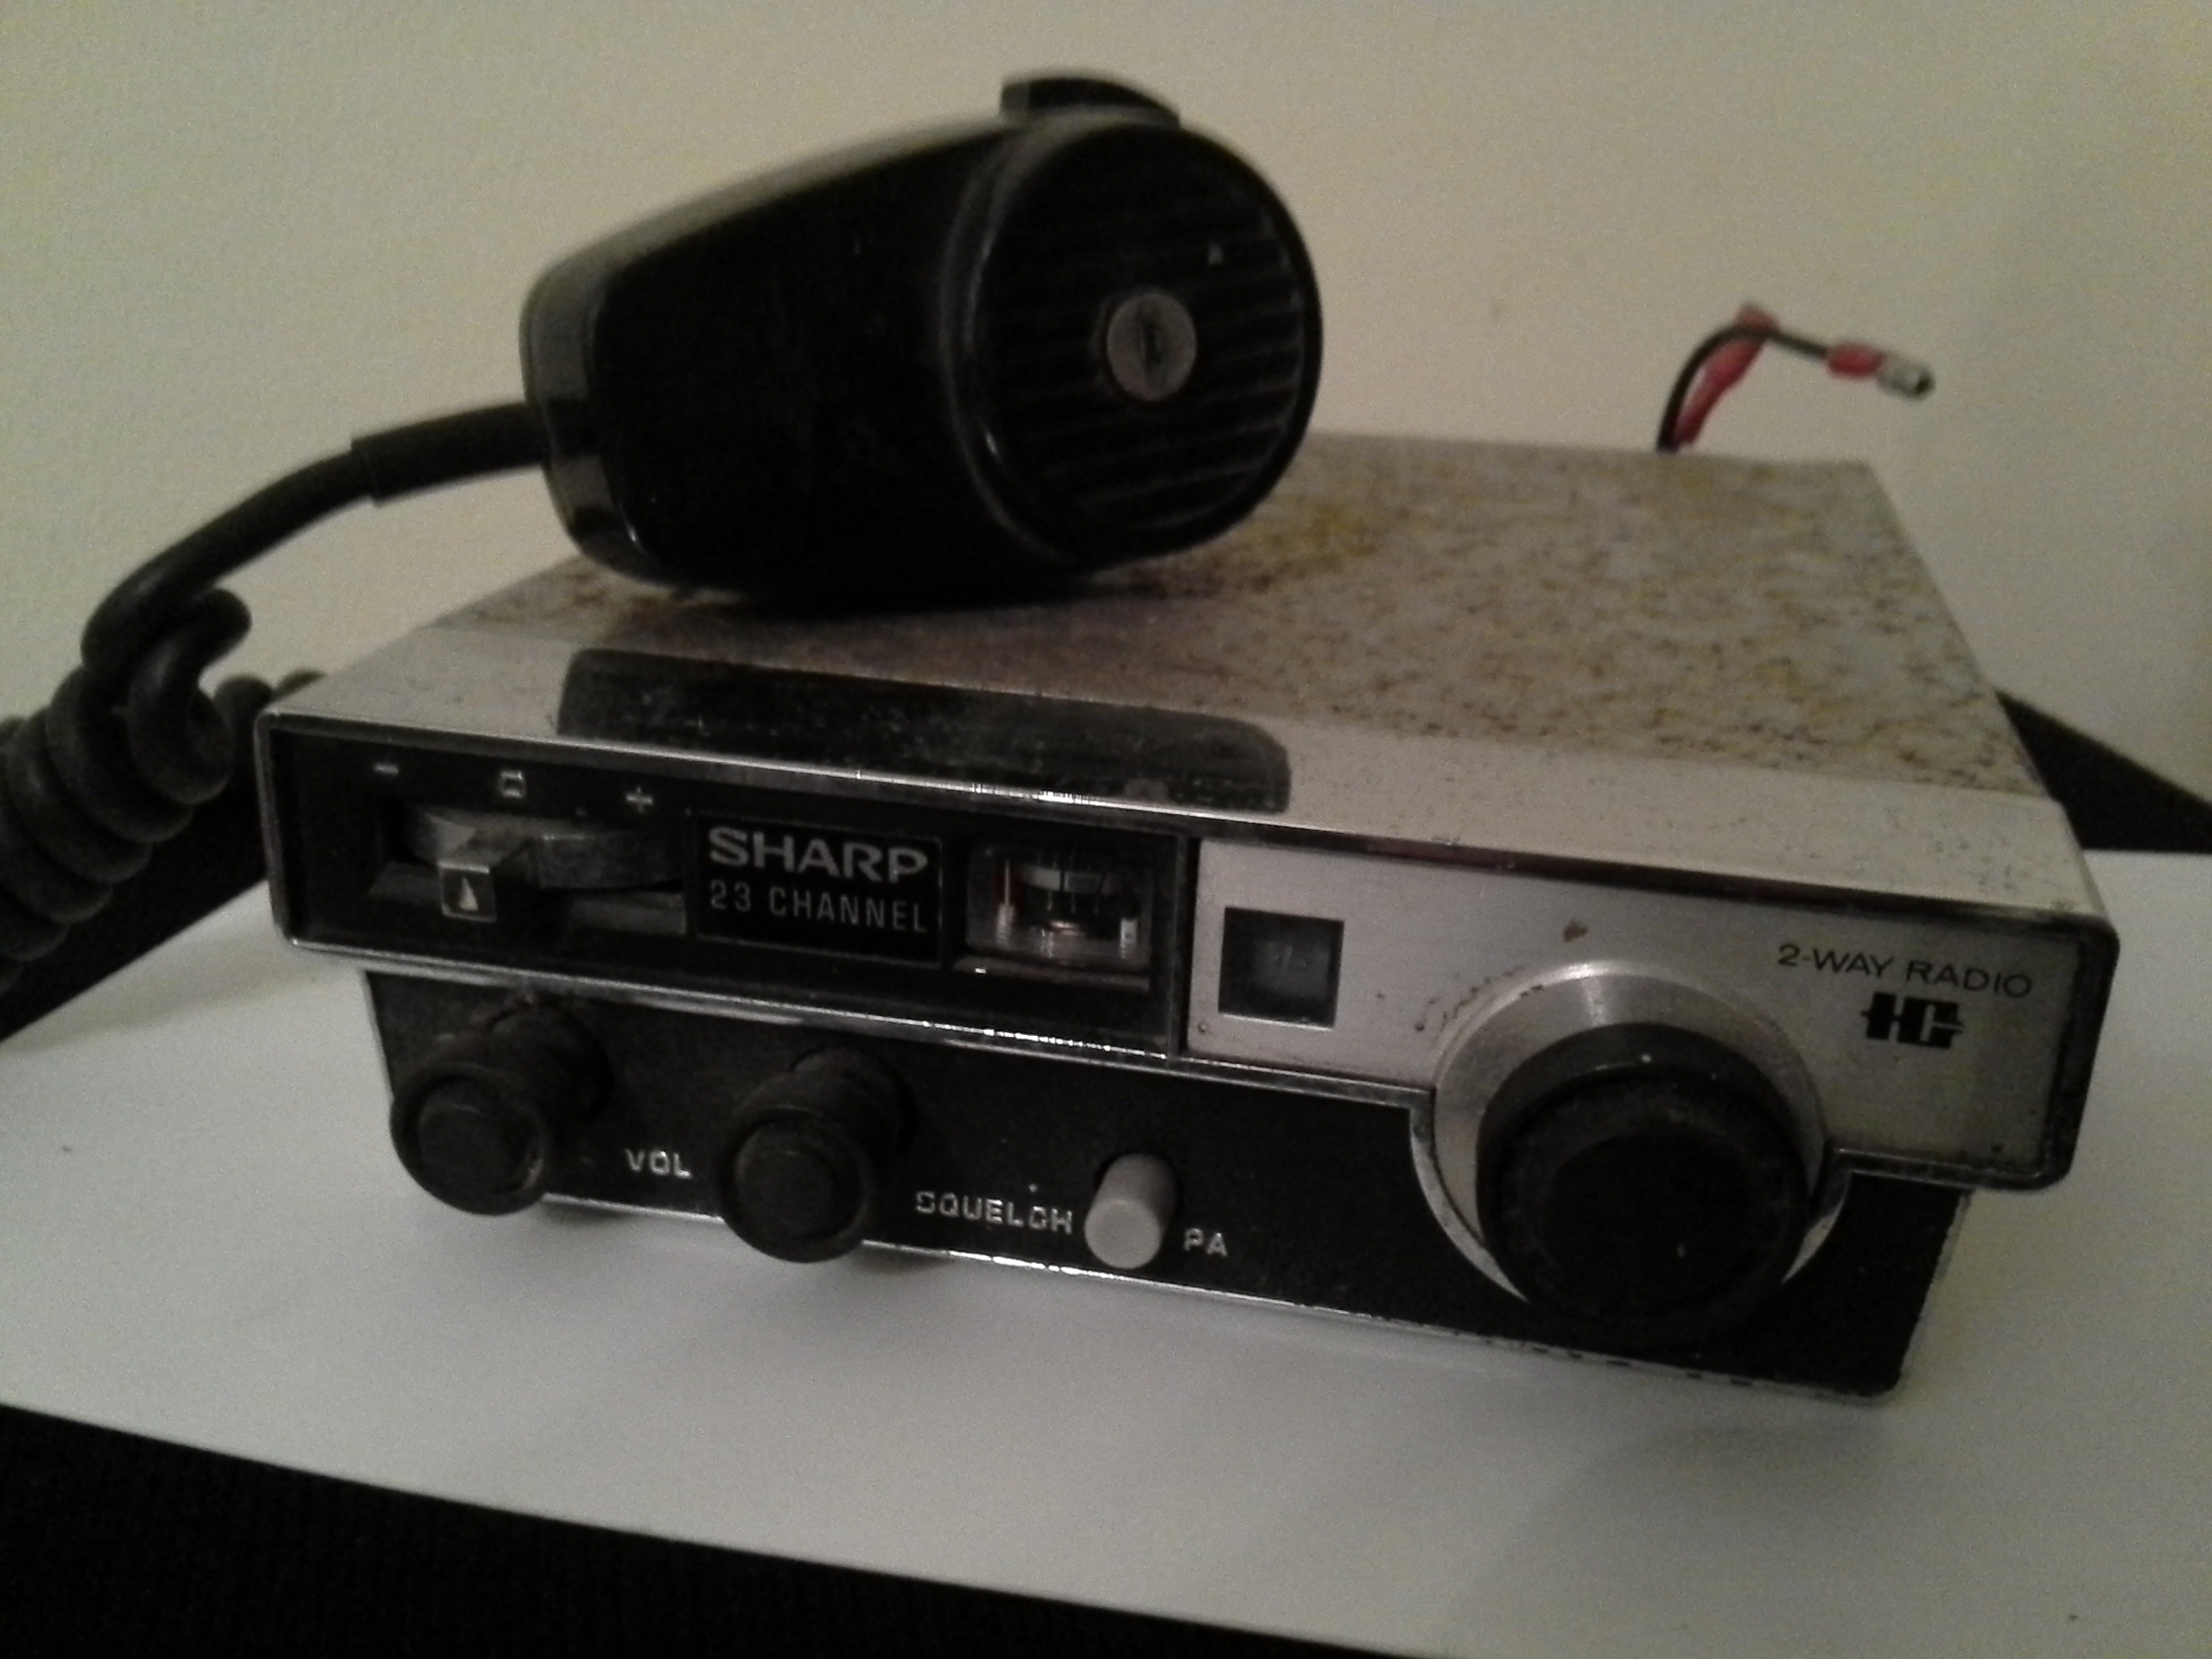 CBRadio, Sharp CBT-58, serviced and tested